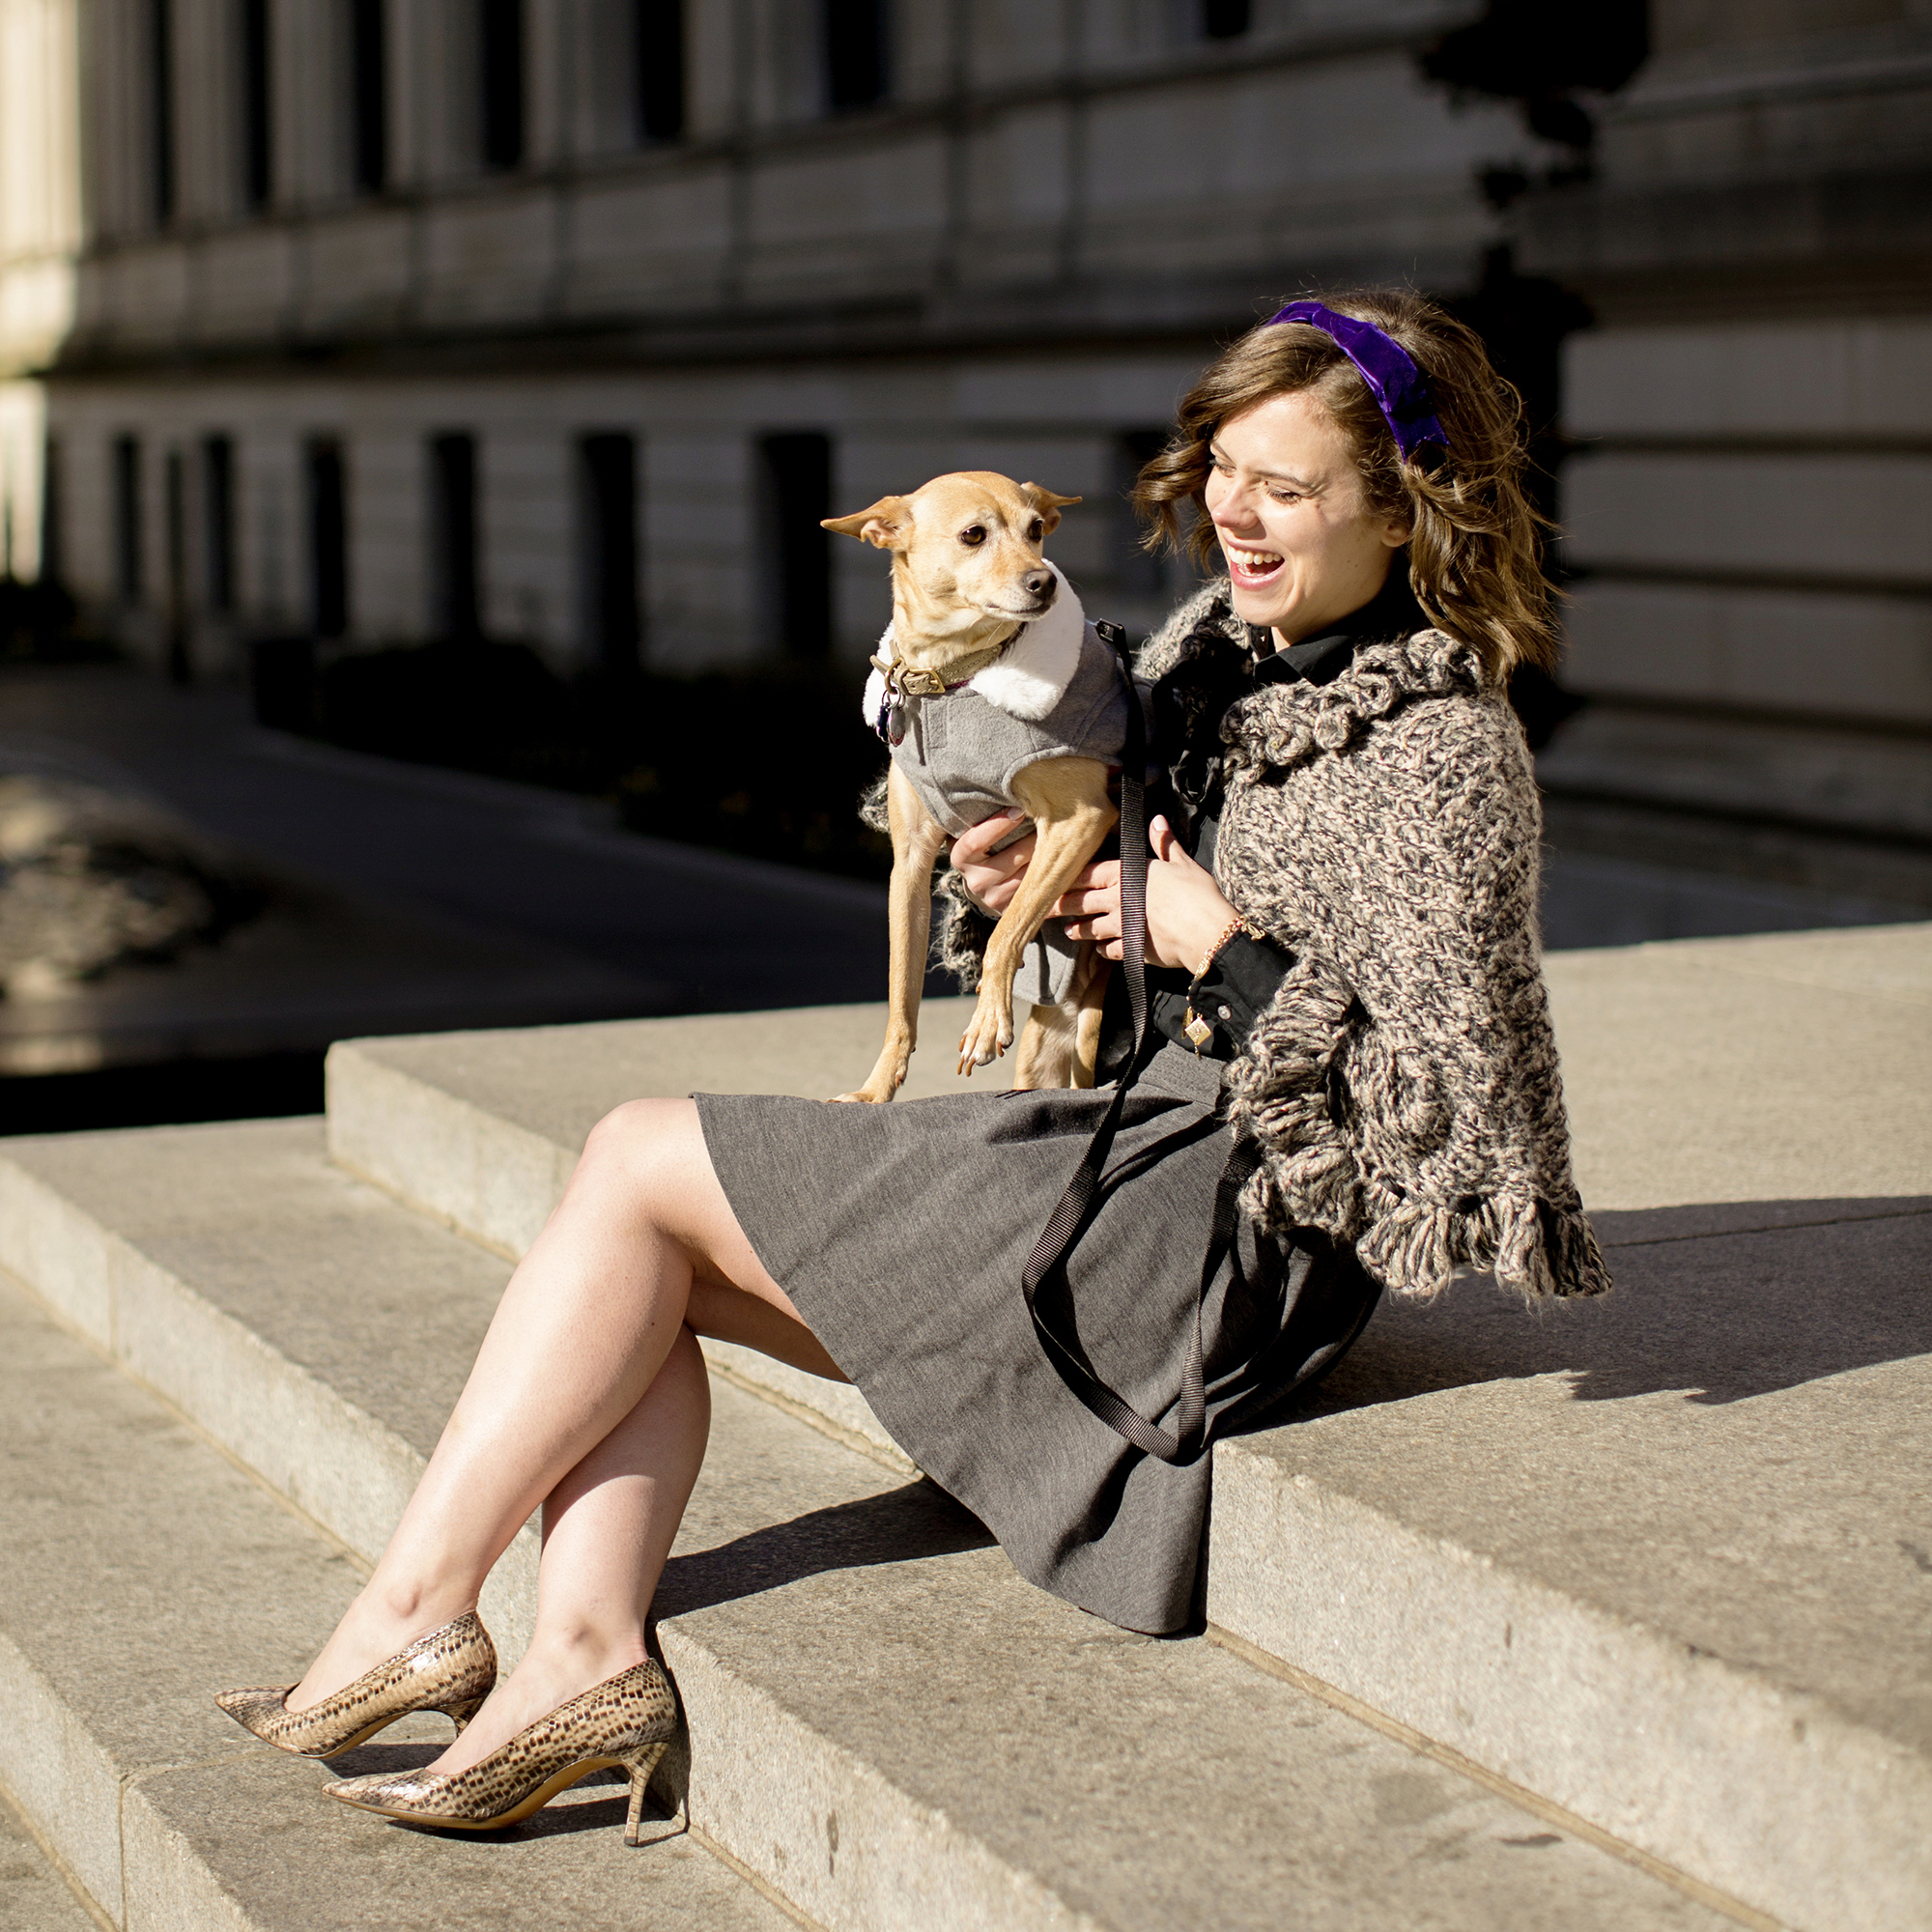 Seriously_Sabrina_Photography_New_York_City_NYC_Gossip_Girl_Dog_Blogger_Little_Holly_6.jpg